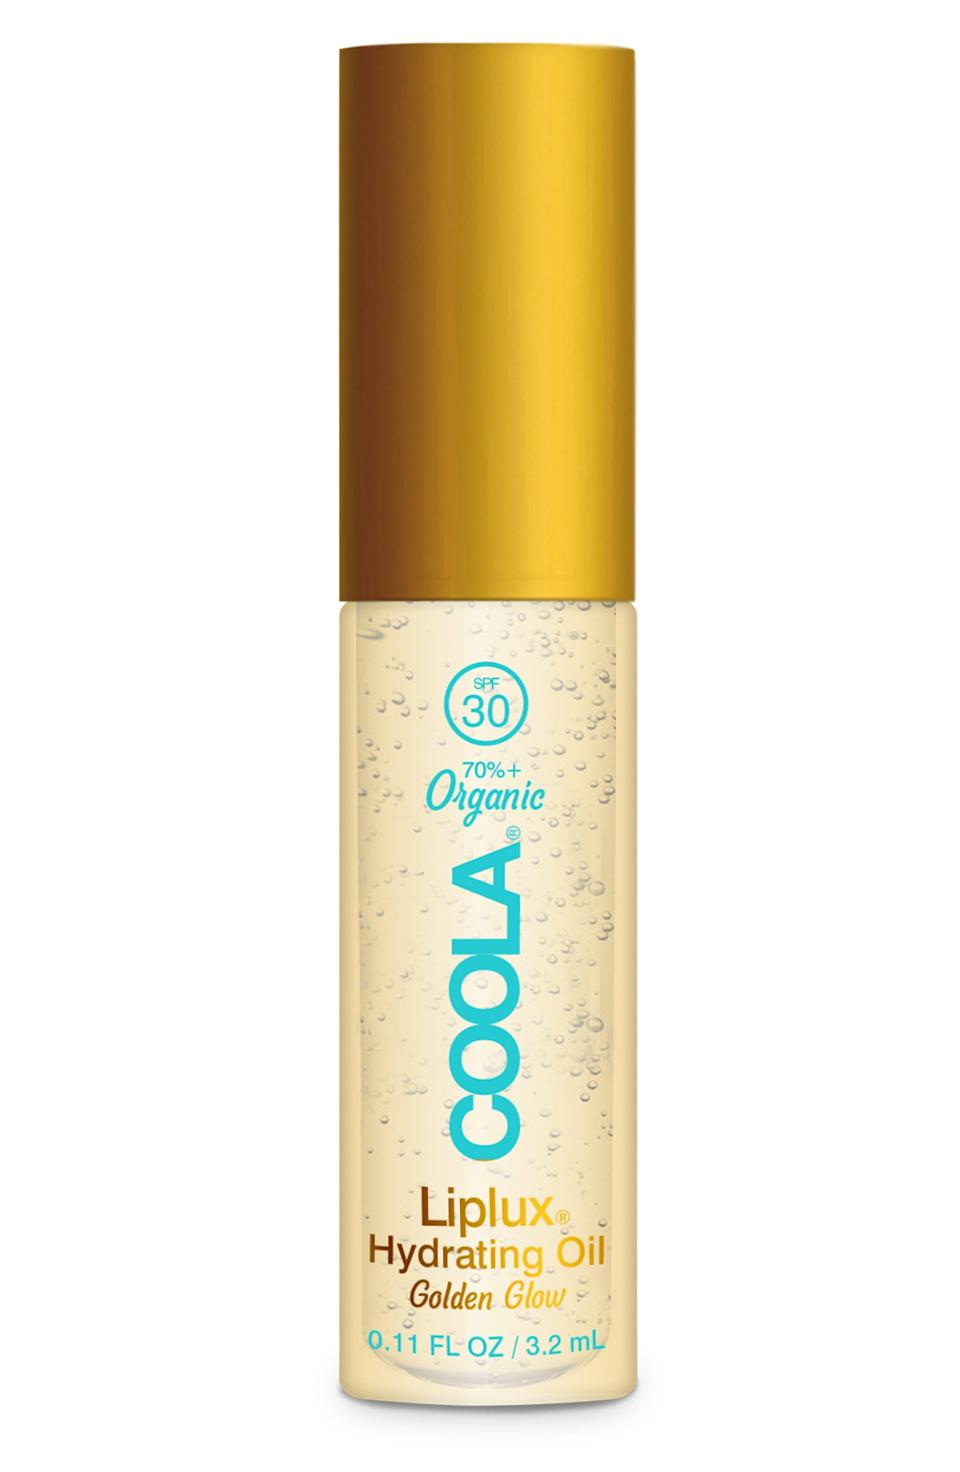 """<p><strong>COOLA</strong></p><p>nordstrom.com</p><p><strong>$18.00</strong></p><p><a href=""""https://go.redirectingat.com?id=74968X1596630&url=https%3A%2F%2Fwww.nordstrom.com%2Fs%2Fcoola-classic-liplux-organic-hydrating-lip-oil-sunscreen-spf-30%2F5814630&sref=https%3A%2F%2Fwww.townandcountrymag.com%2Fstyle%2Fbeauty-products%2Fg36464134%2Flip-balm-with-spf%2F"""" rel=""""nofollow noopener"""" target=""""_blank"""" data-ylk=""""slk:Shop Now"""" class=""""link rapid-noclick-resp"""">Shop Now</a></p><p>The glossy look is back and this gold-tinted oil adds that covetable summery shine along with broad spectrum SPF 30 to make your beach day extra-'grammable. </p><p><strong>More: </strong><a href=""""https://www.townandcountrymag.com/style/beauty-products/g36214042/best-sunscreen-for-dark-skin/"""" rel=""""nofollow noopener"""" target=""""_blank"""" data-ylk=""""slk:The Best Sunscreens for Deep Skin Tones"""" class=""""link rapid-noclick-resp"""">The Best Sunscreens for Deep Skin Tones</a></p>"""